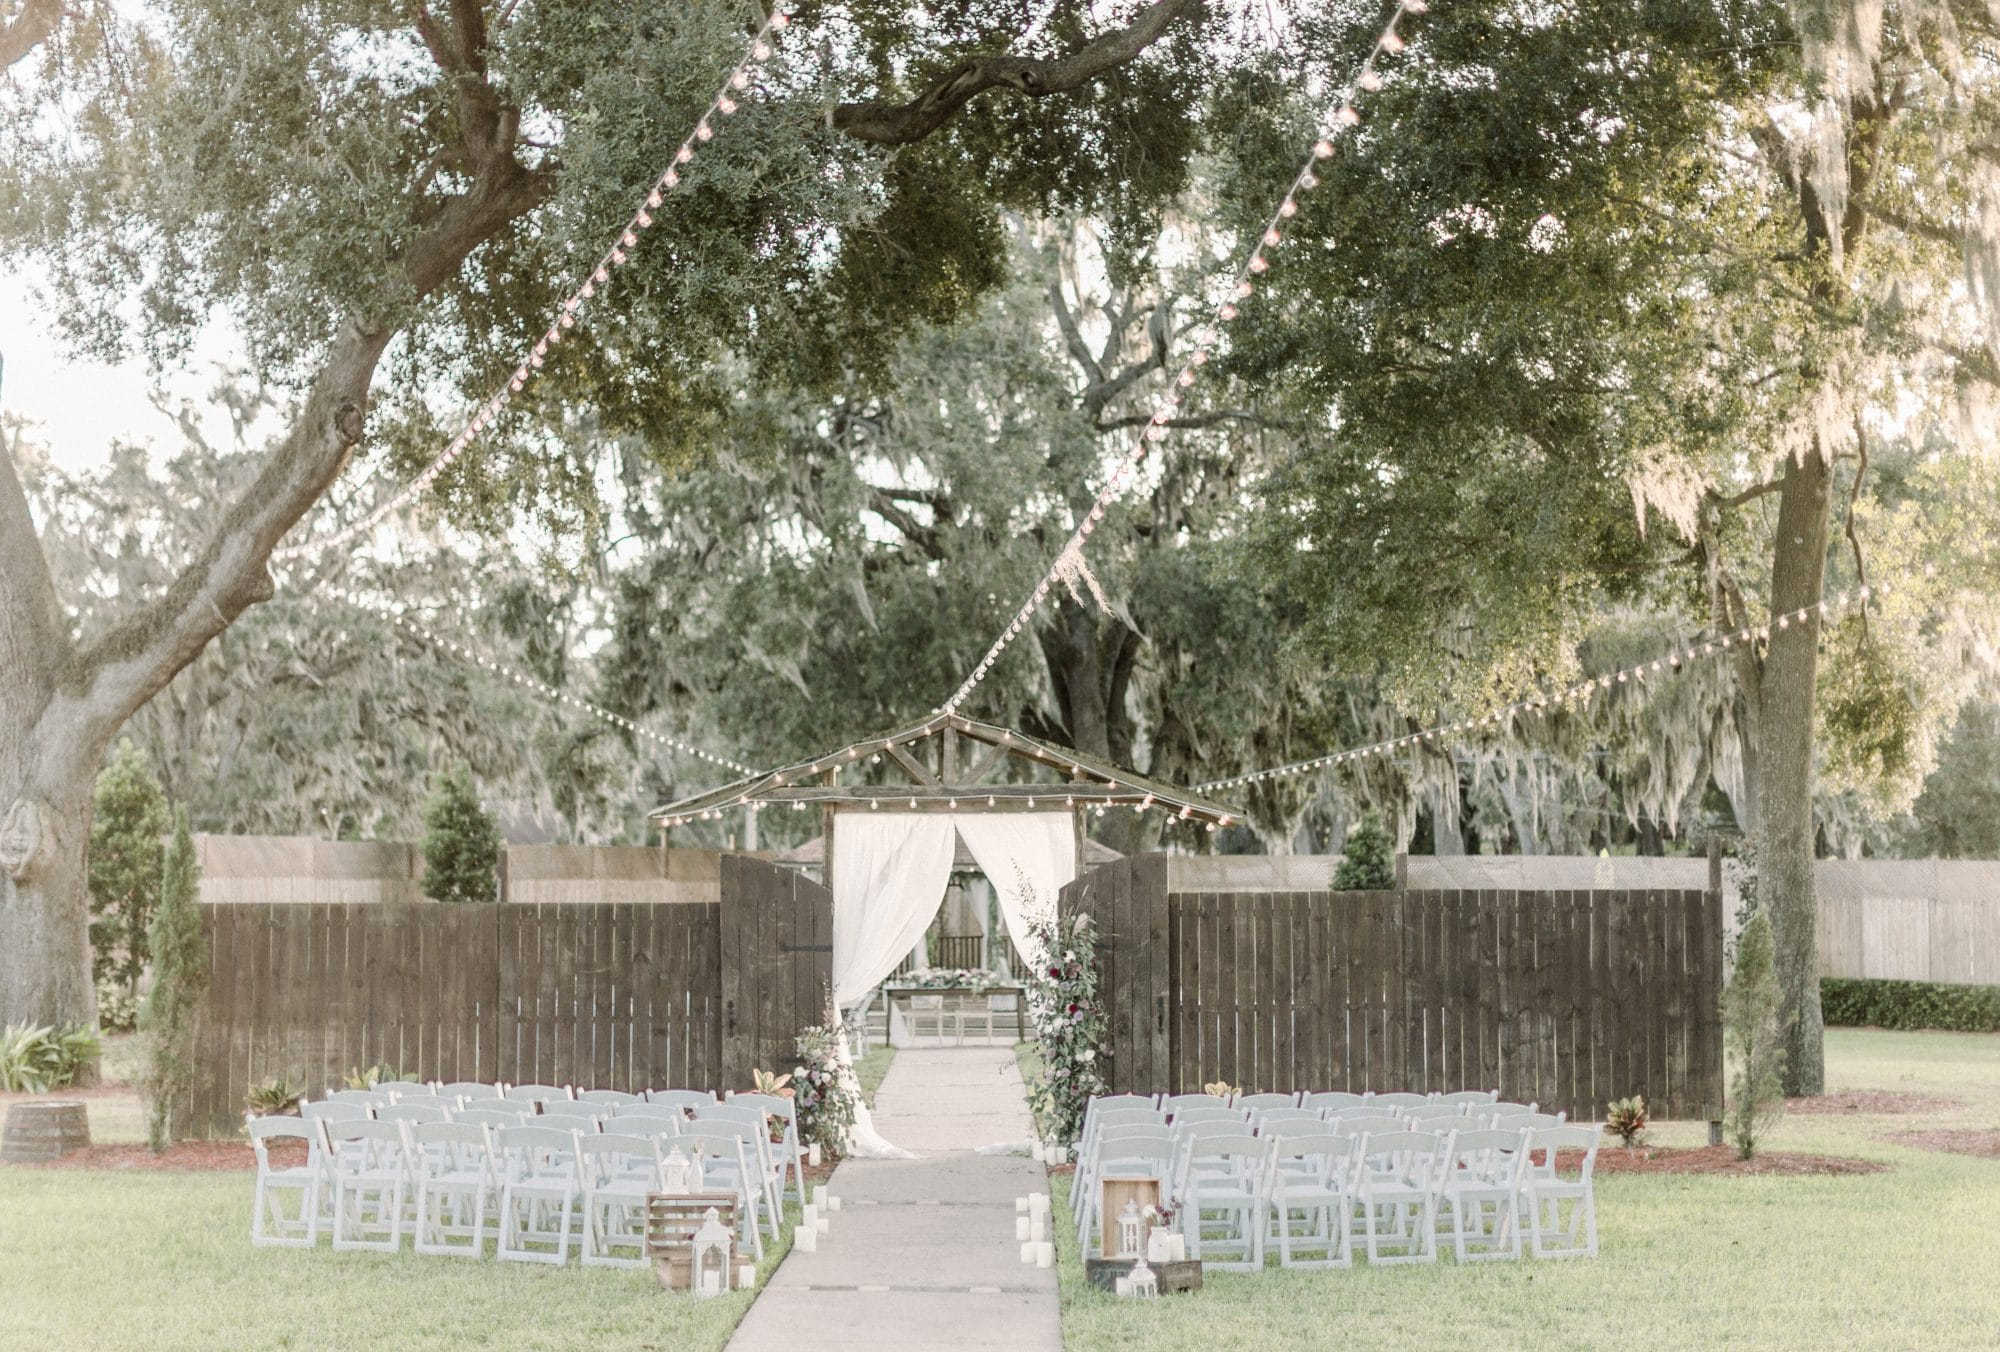 Harmony Haven Event Venue - rustic outdoor ceremony space with market lighting and rustic wooden backdrop